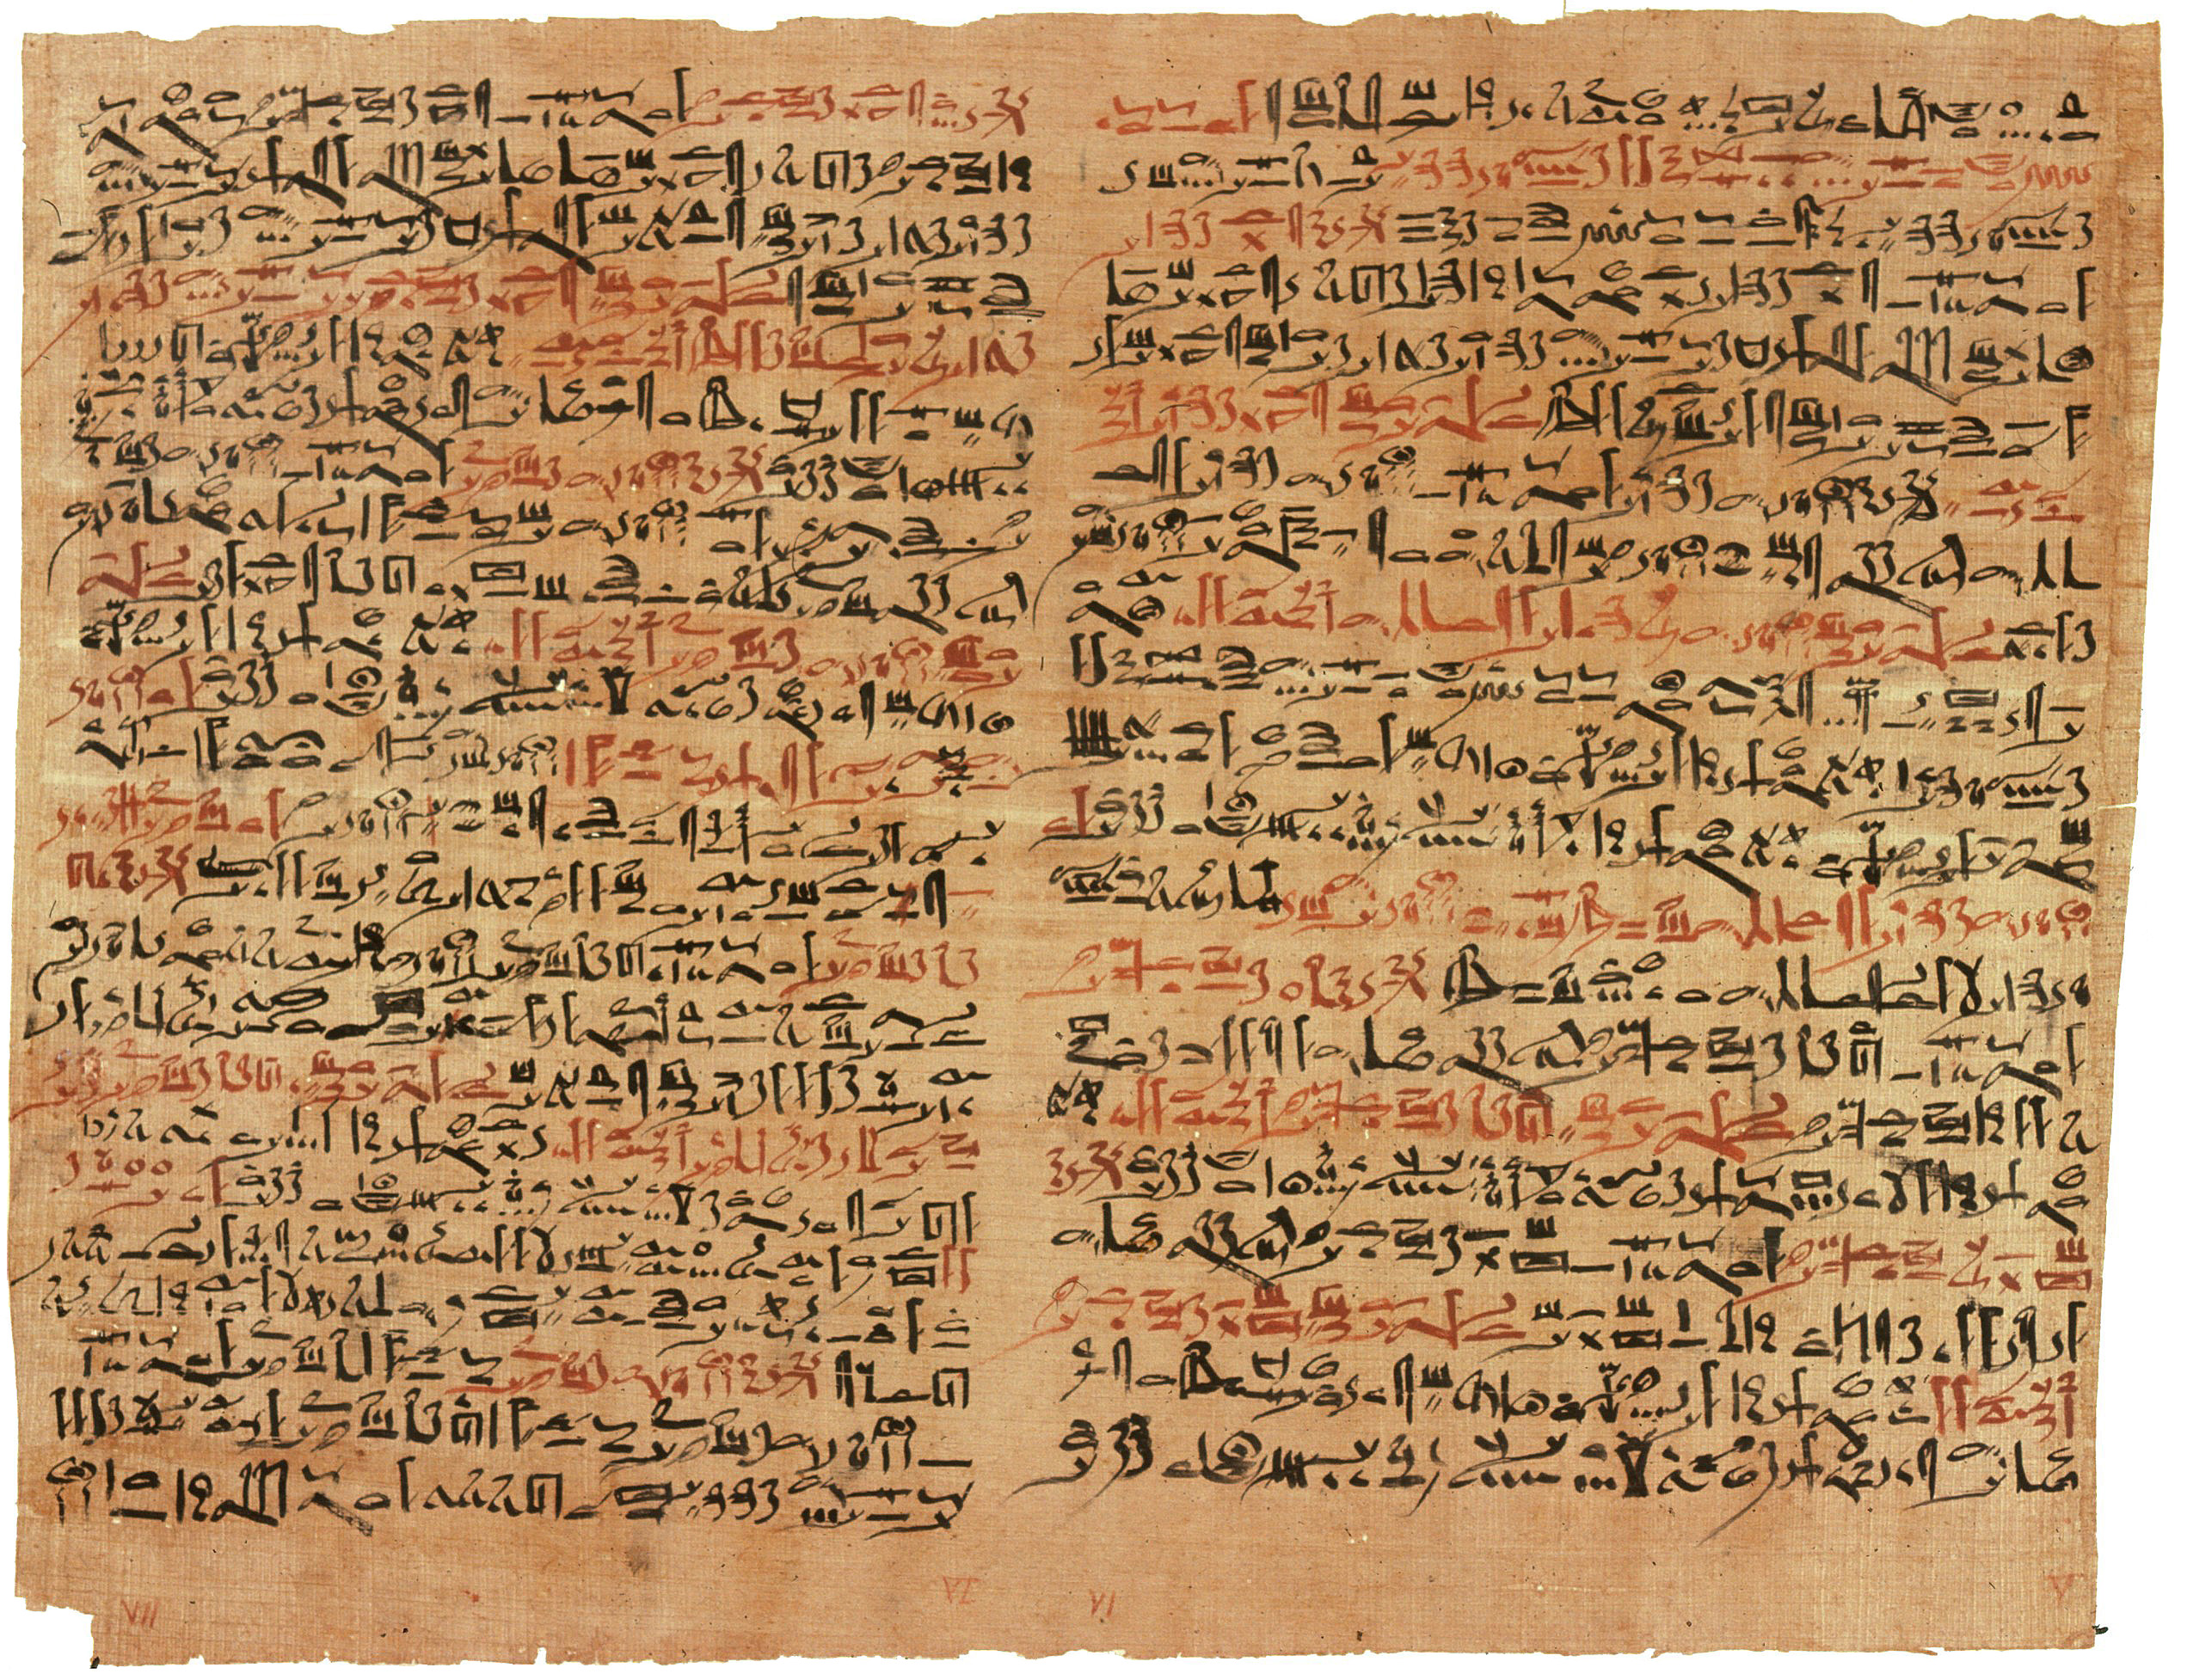 Image of papyrus paper that is old, brown, and worn. The text is written in two columns in black and red ink.